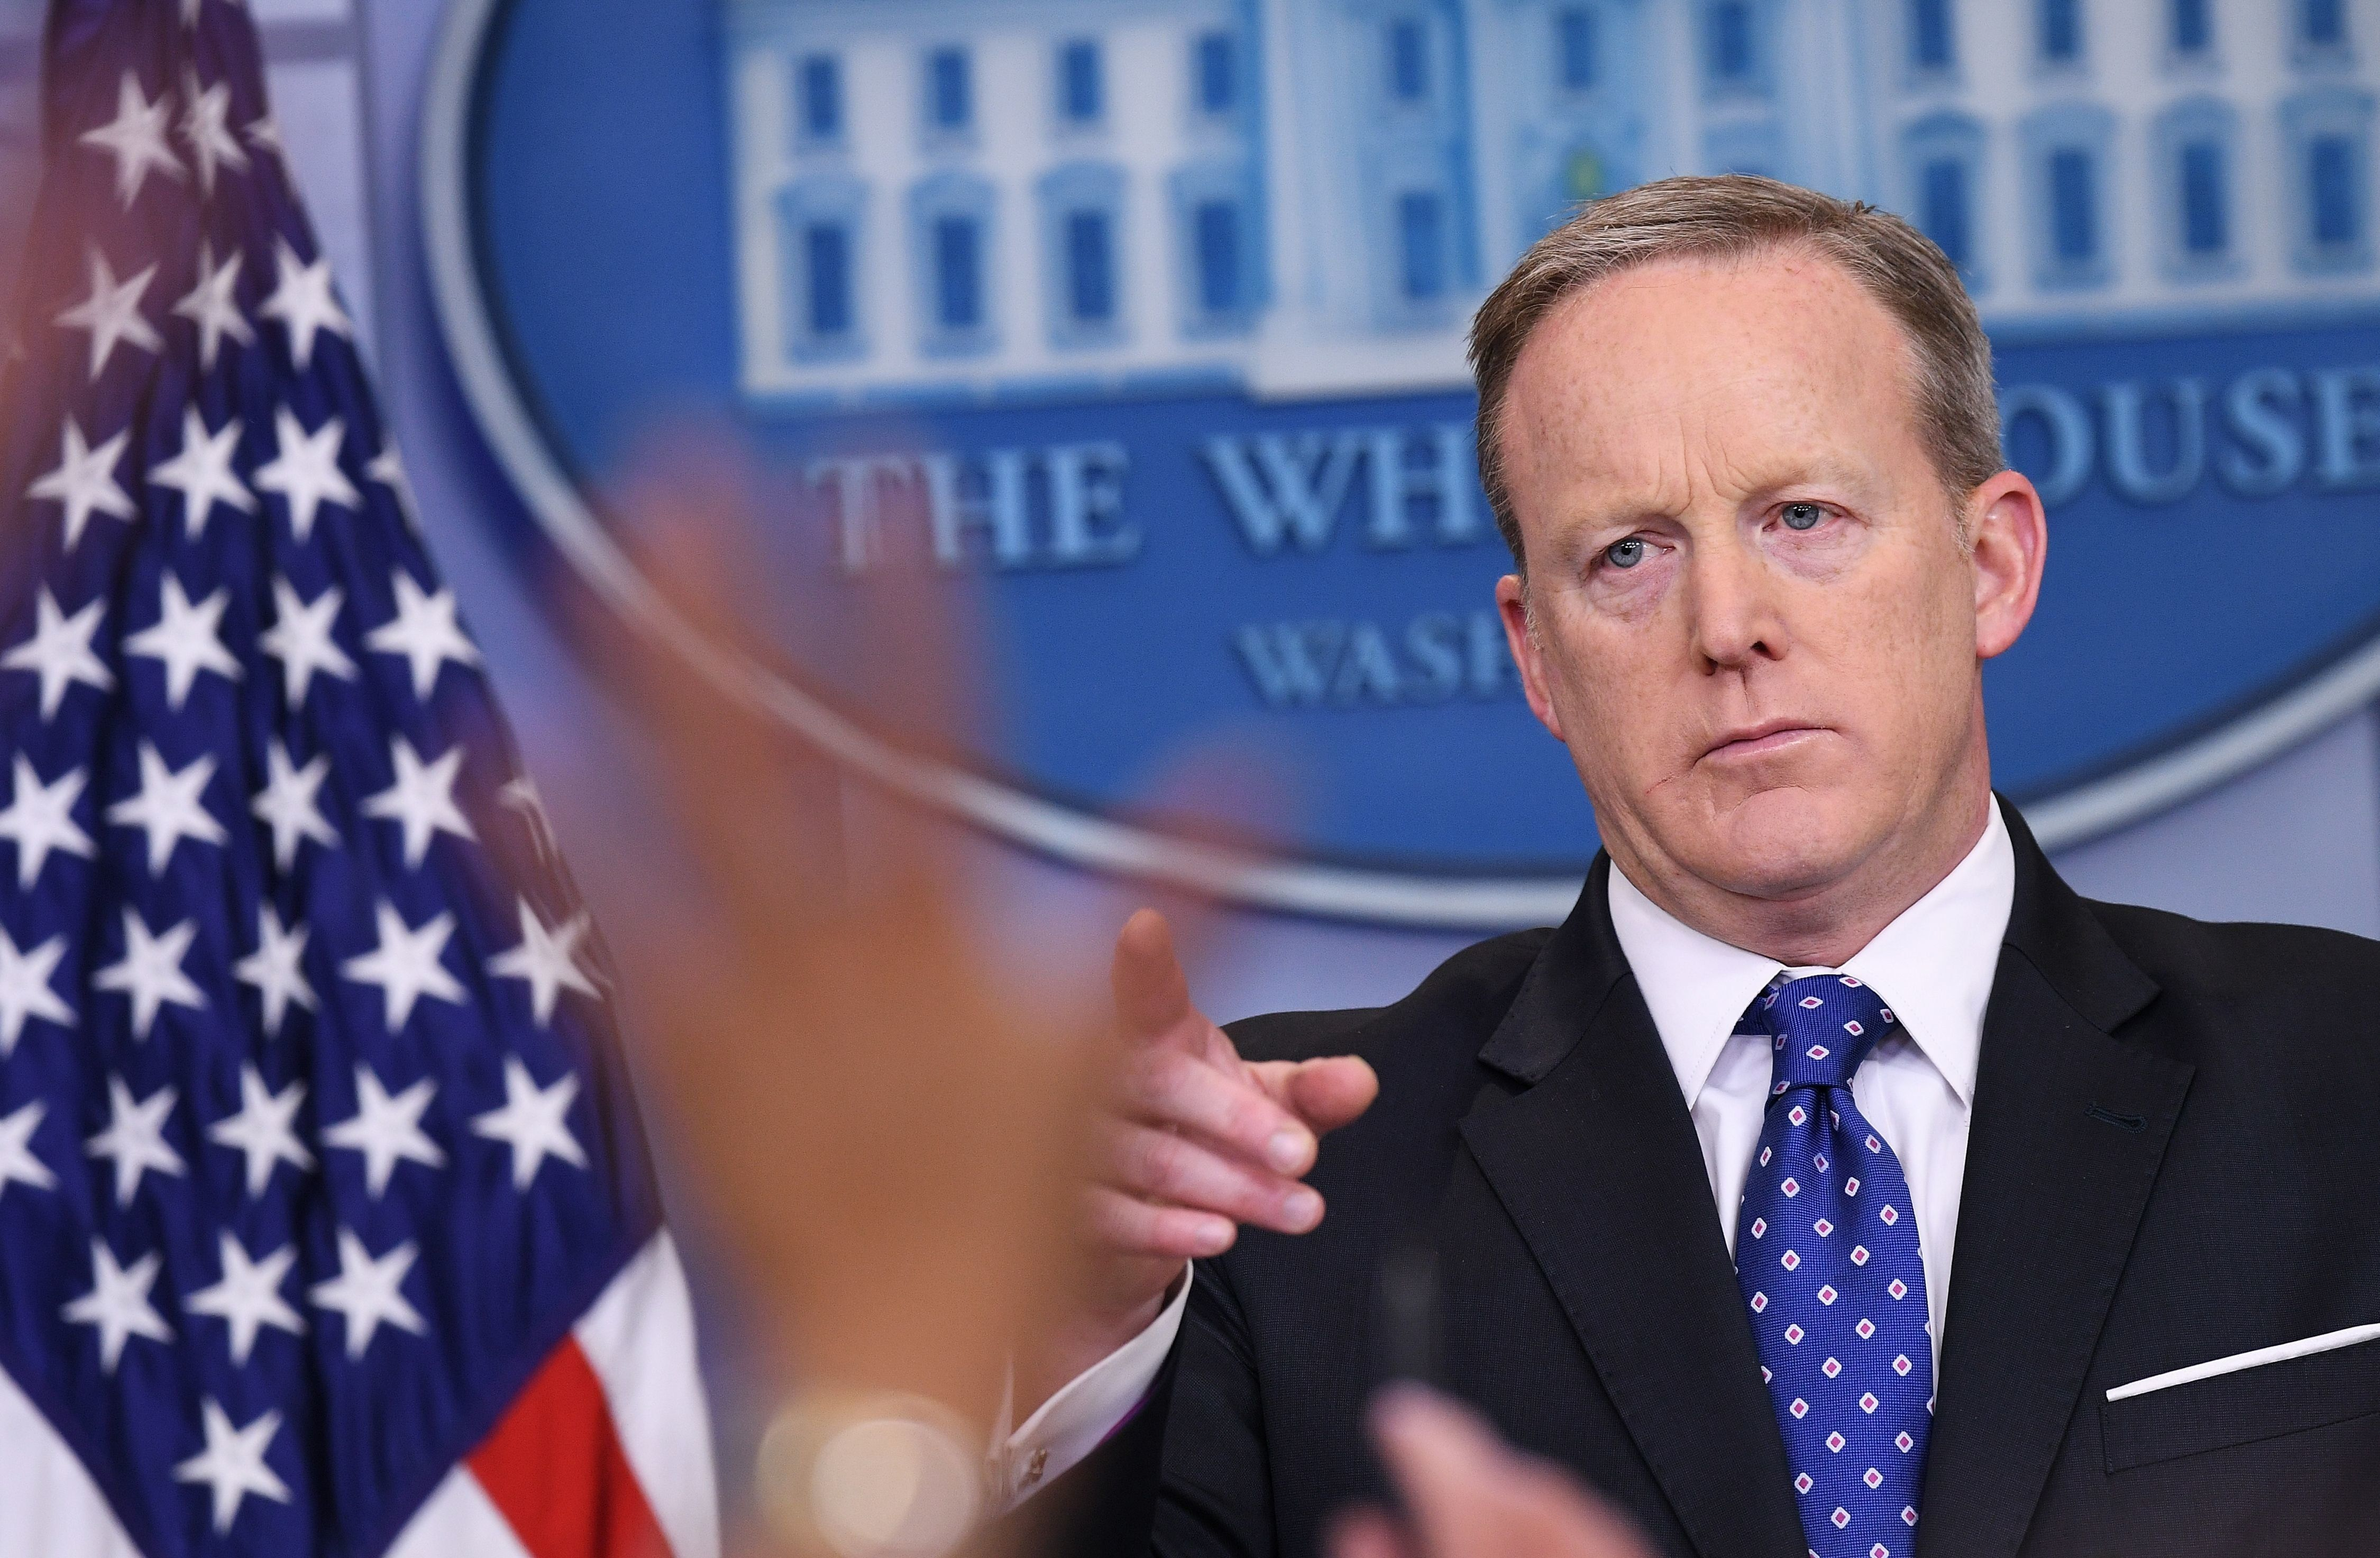 Reporters raise their hands with questions asWhite House press secretary Sean Spicer speaks during the daily briefing i